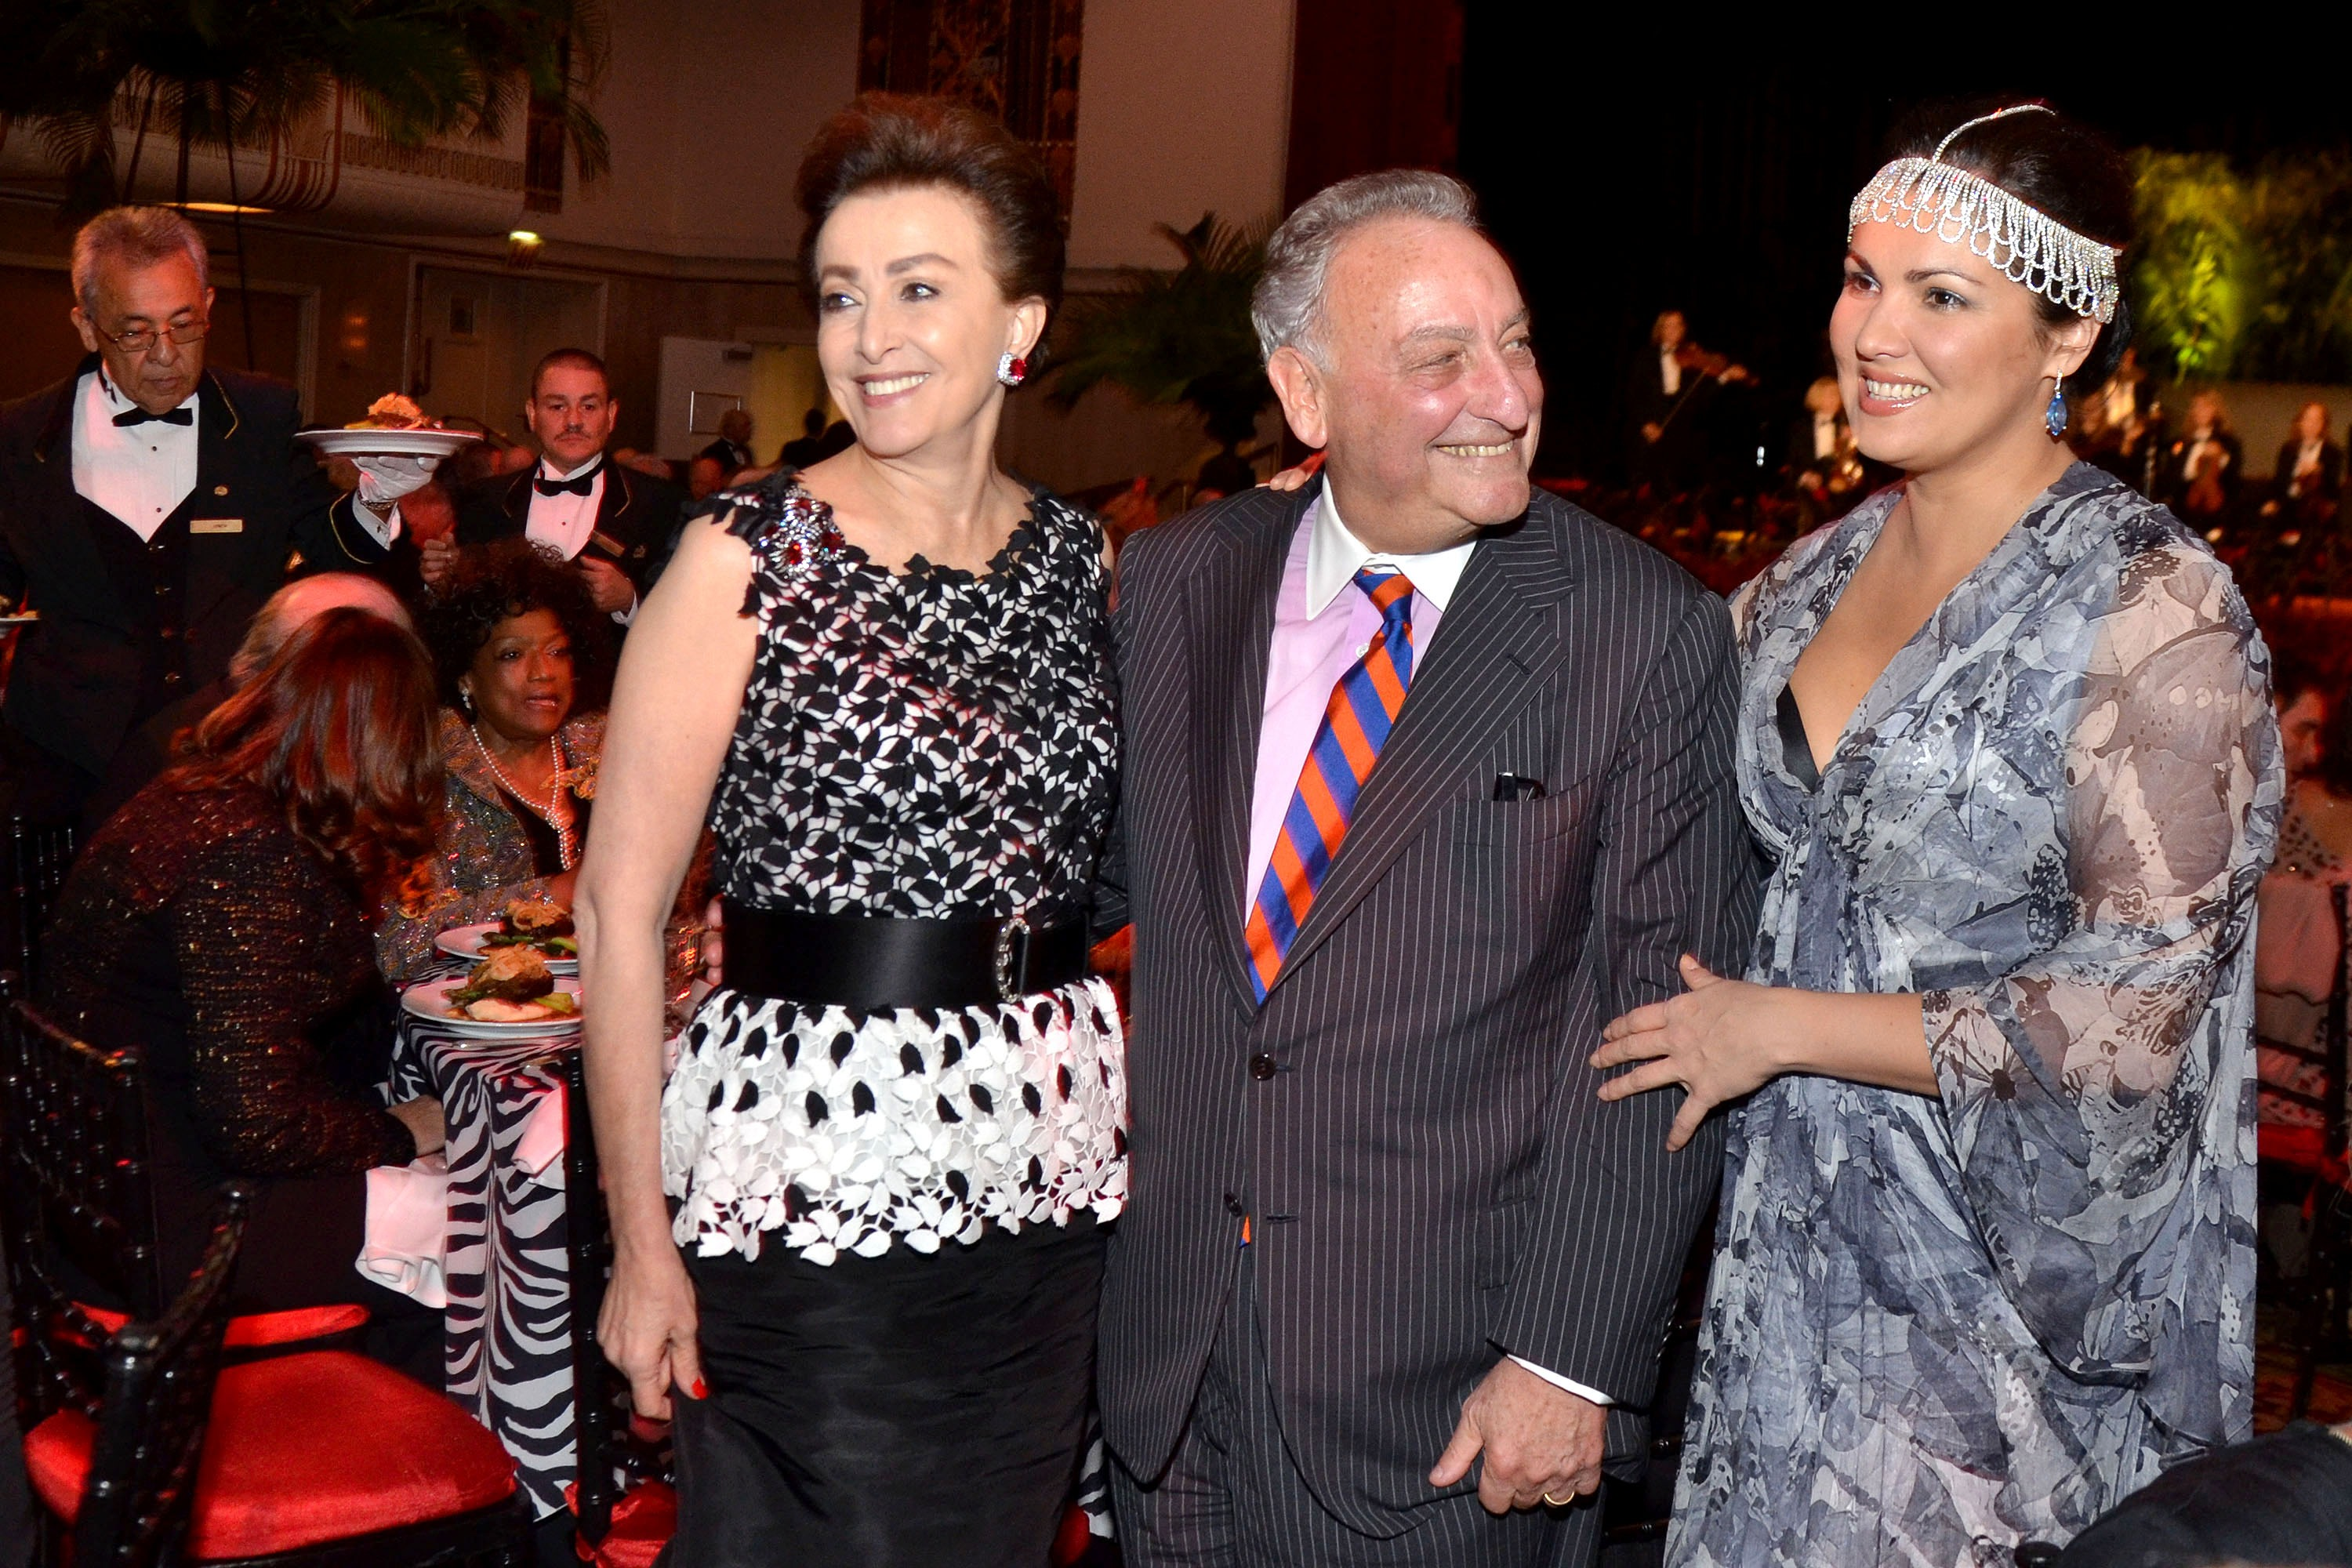 Left to right: Mercedes Bass, vice chair of the board of trustees of Carnegie Hall; Sandy Weill, chairman of Carnegie Hall; and soprano Anna Netrebko attend the Carnegie Hall dinner gala at the Waldorf Astoria in New York on Oct. 2, 2013.